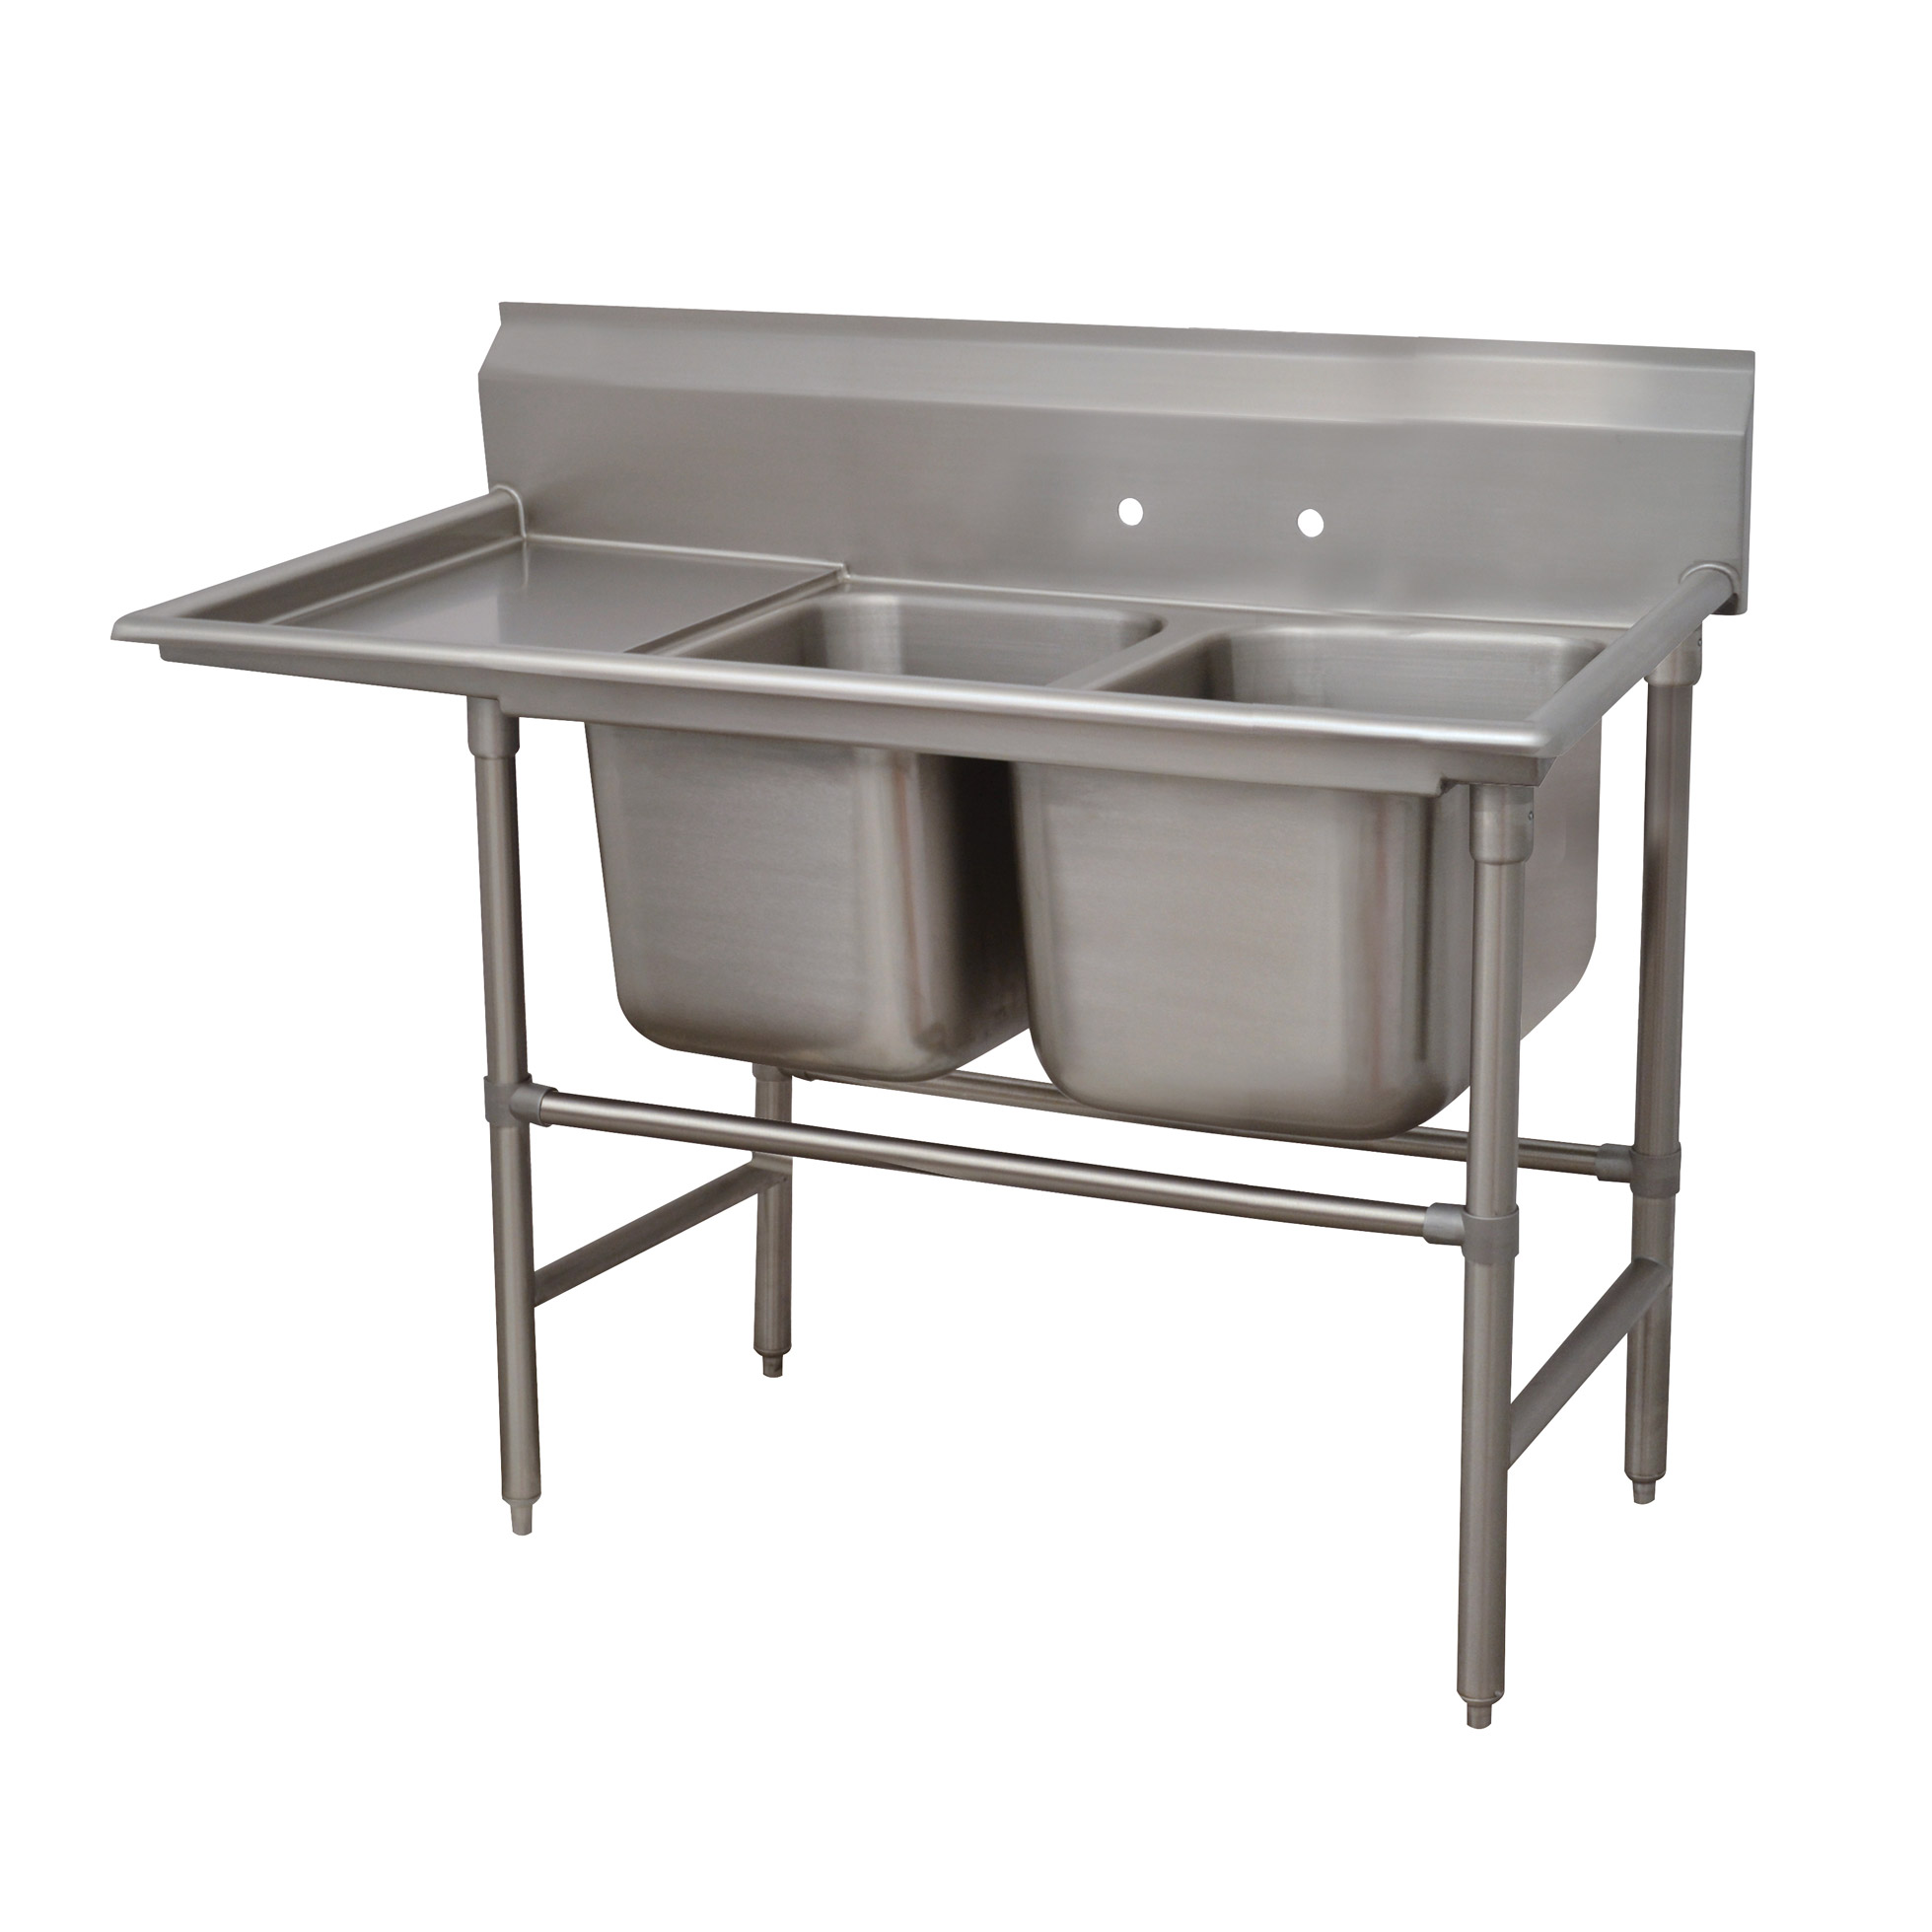 Advance Tabco 94-2-36-36L sink, (2) two compartment